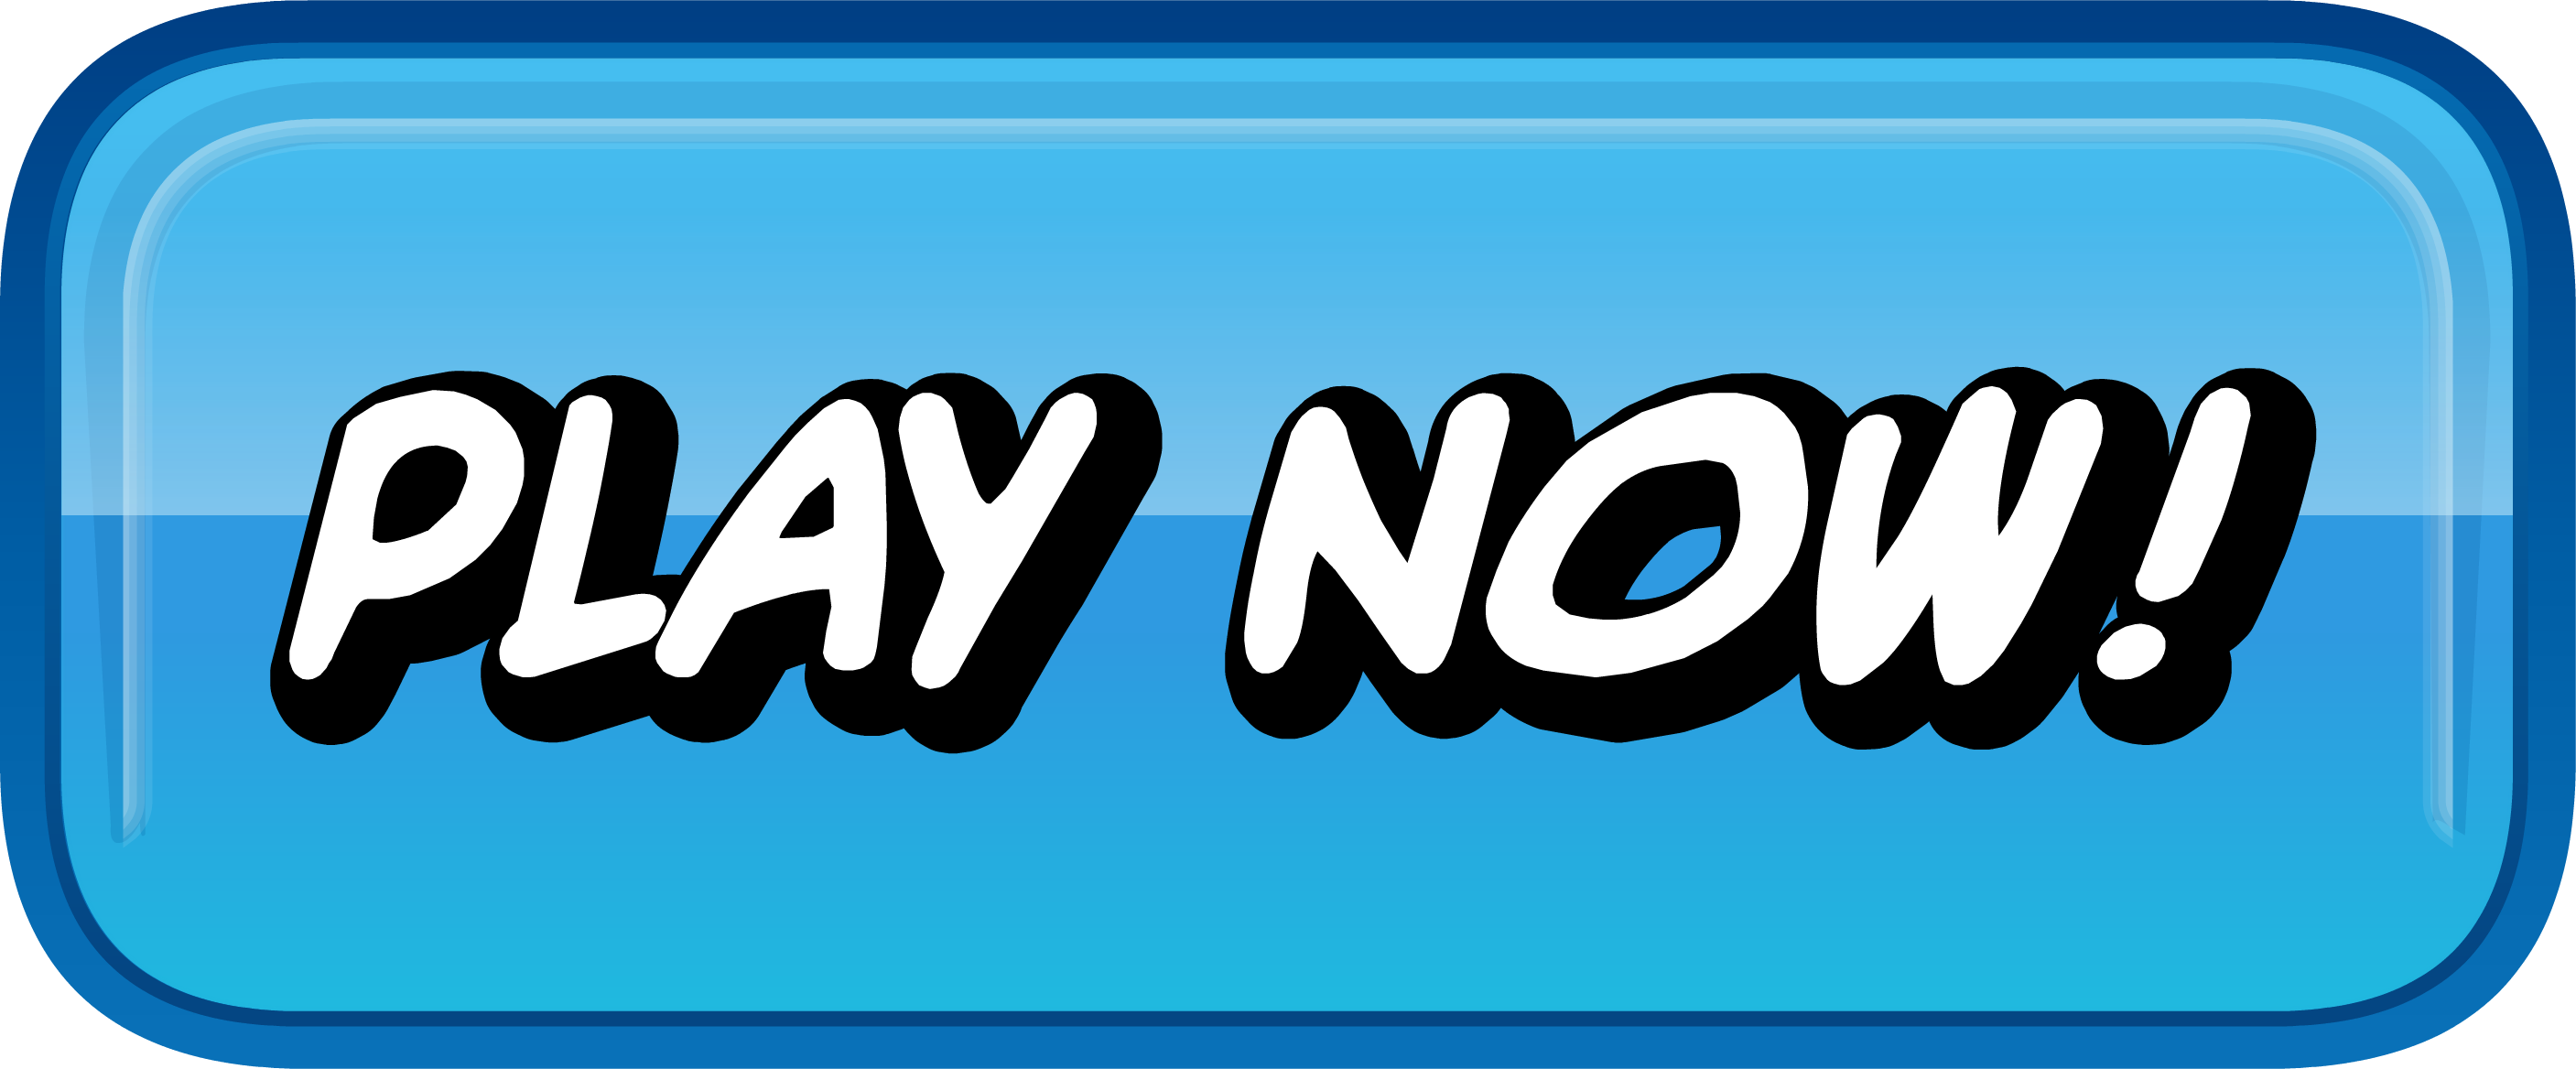 Easy Peasy Lemon Squeezy! Online Slot | PLAY NOW | StarGames Casino